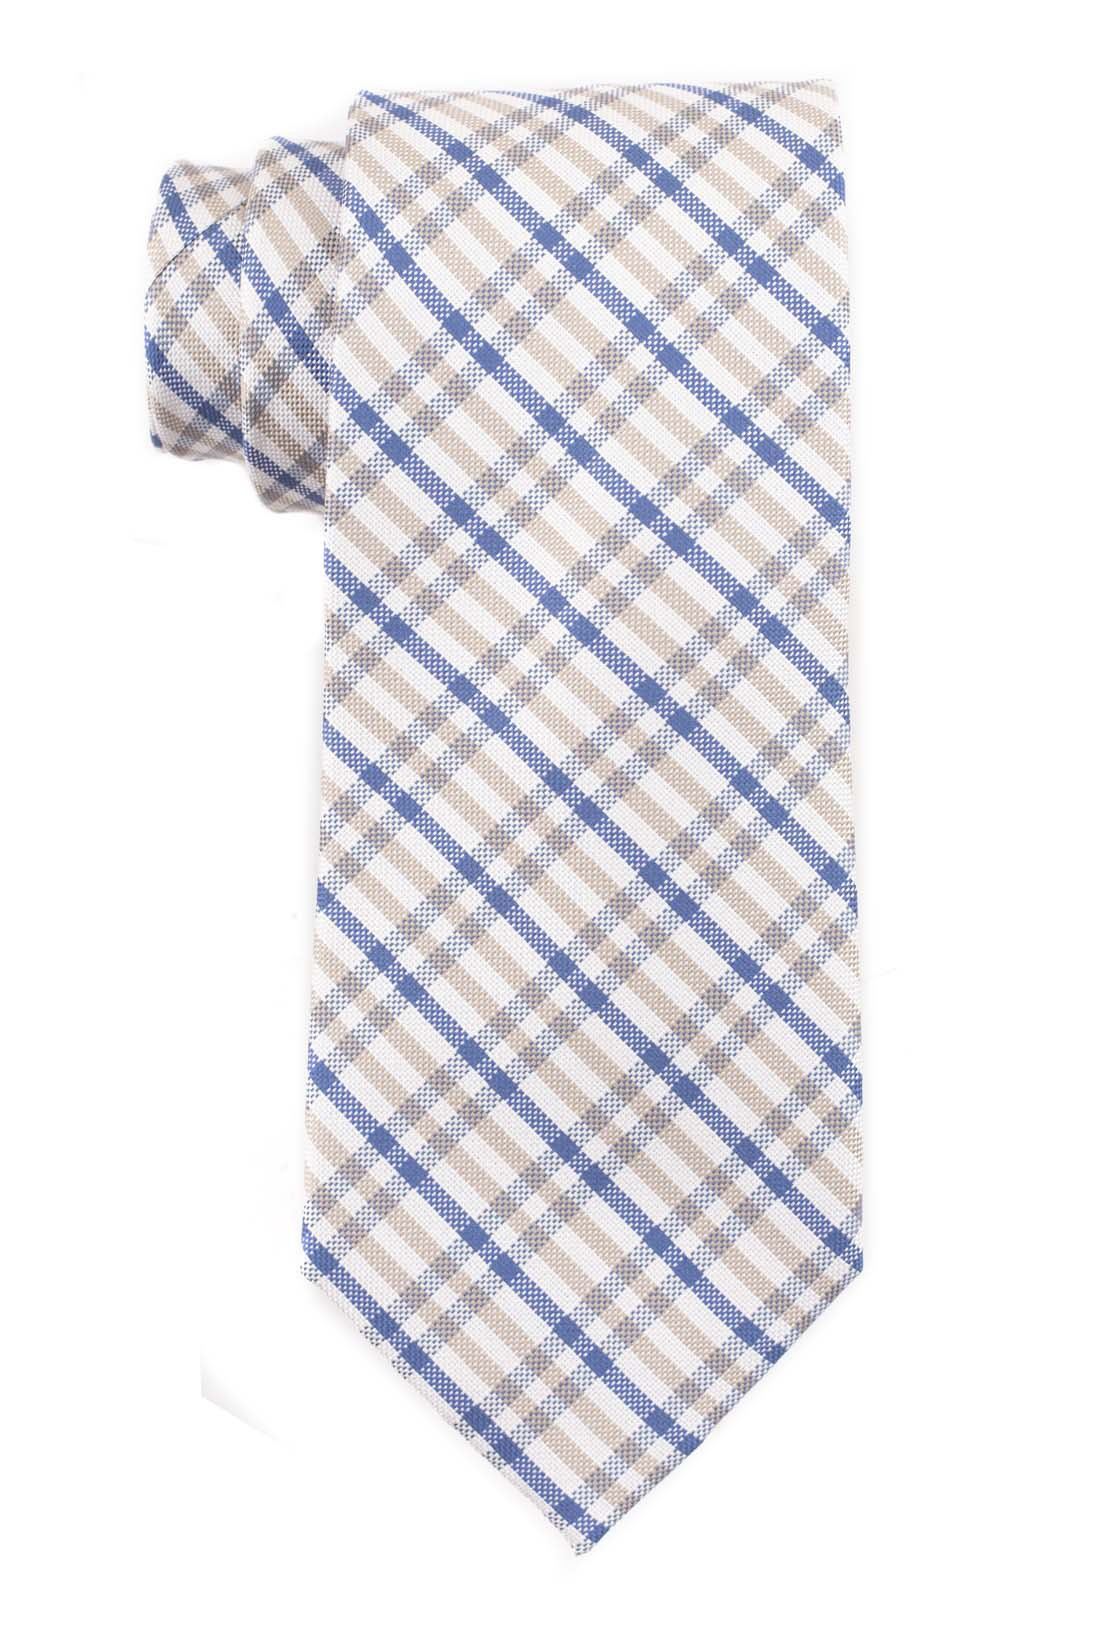 Jet Plaid Cream and Blue 100% Silk Necktie